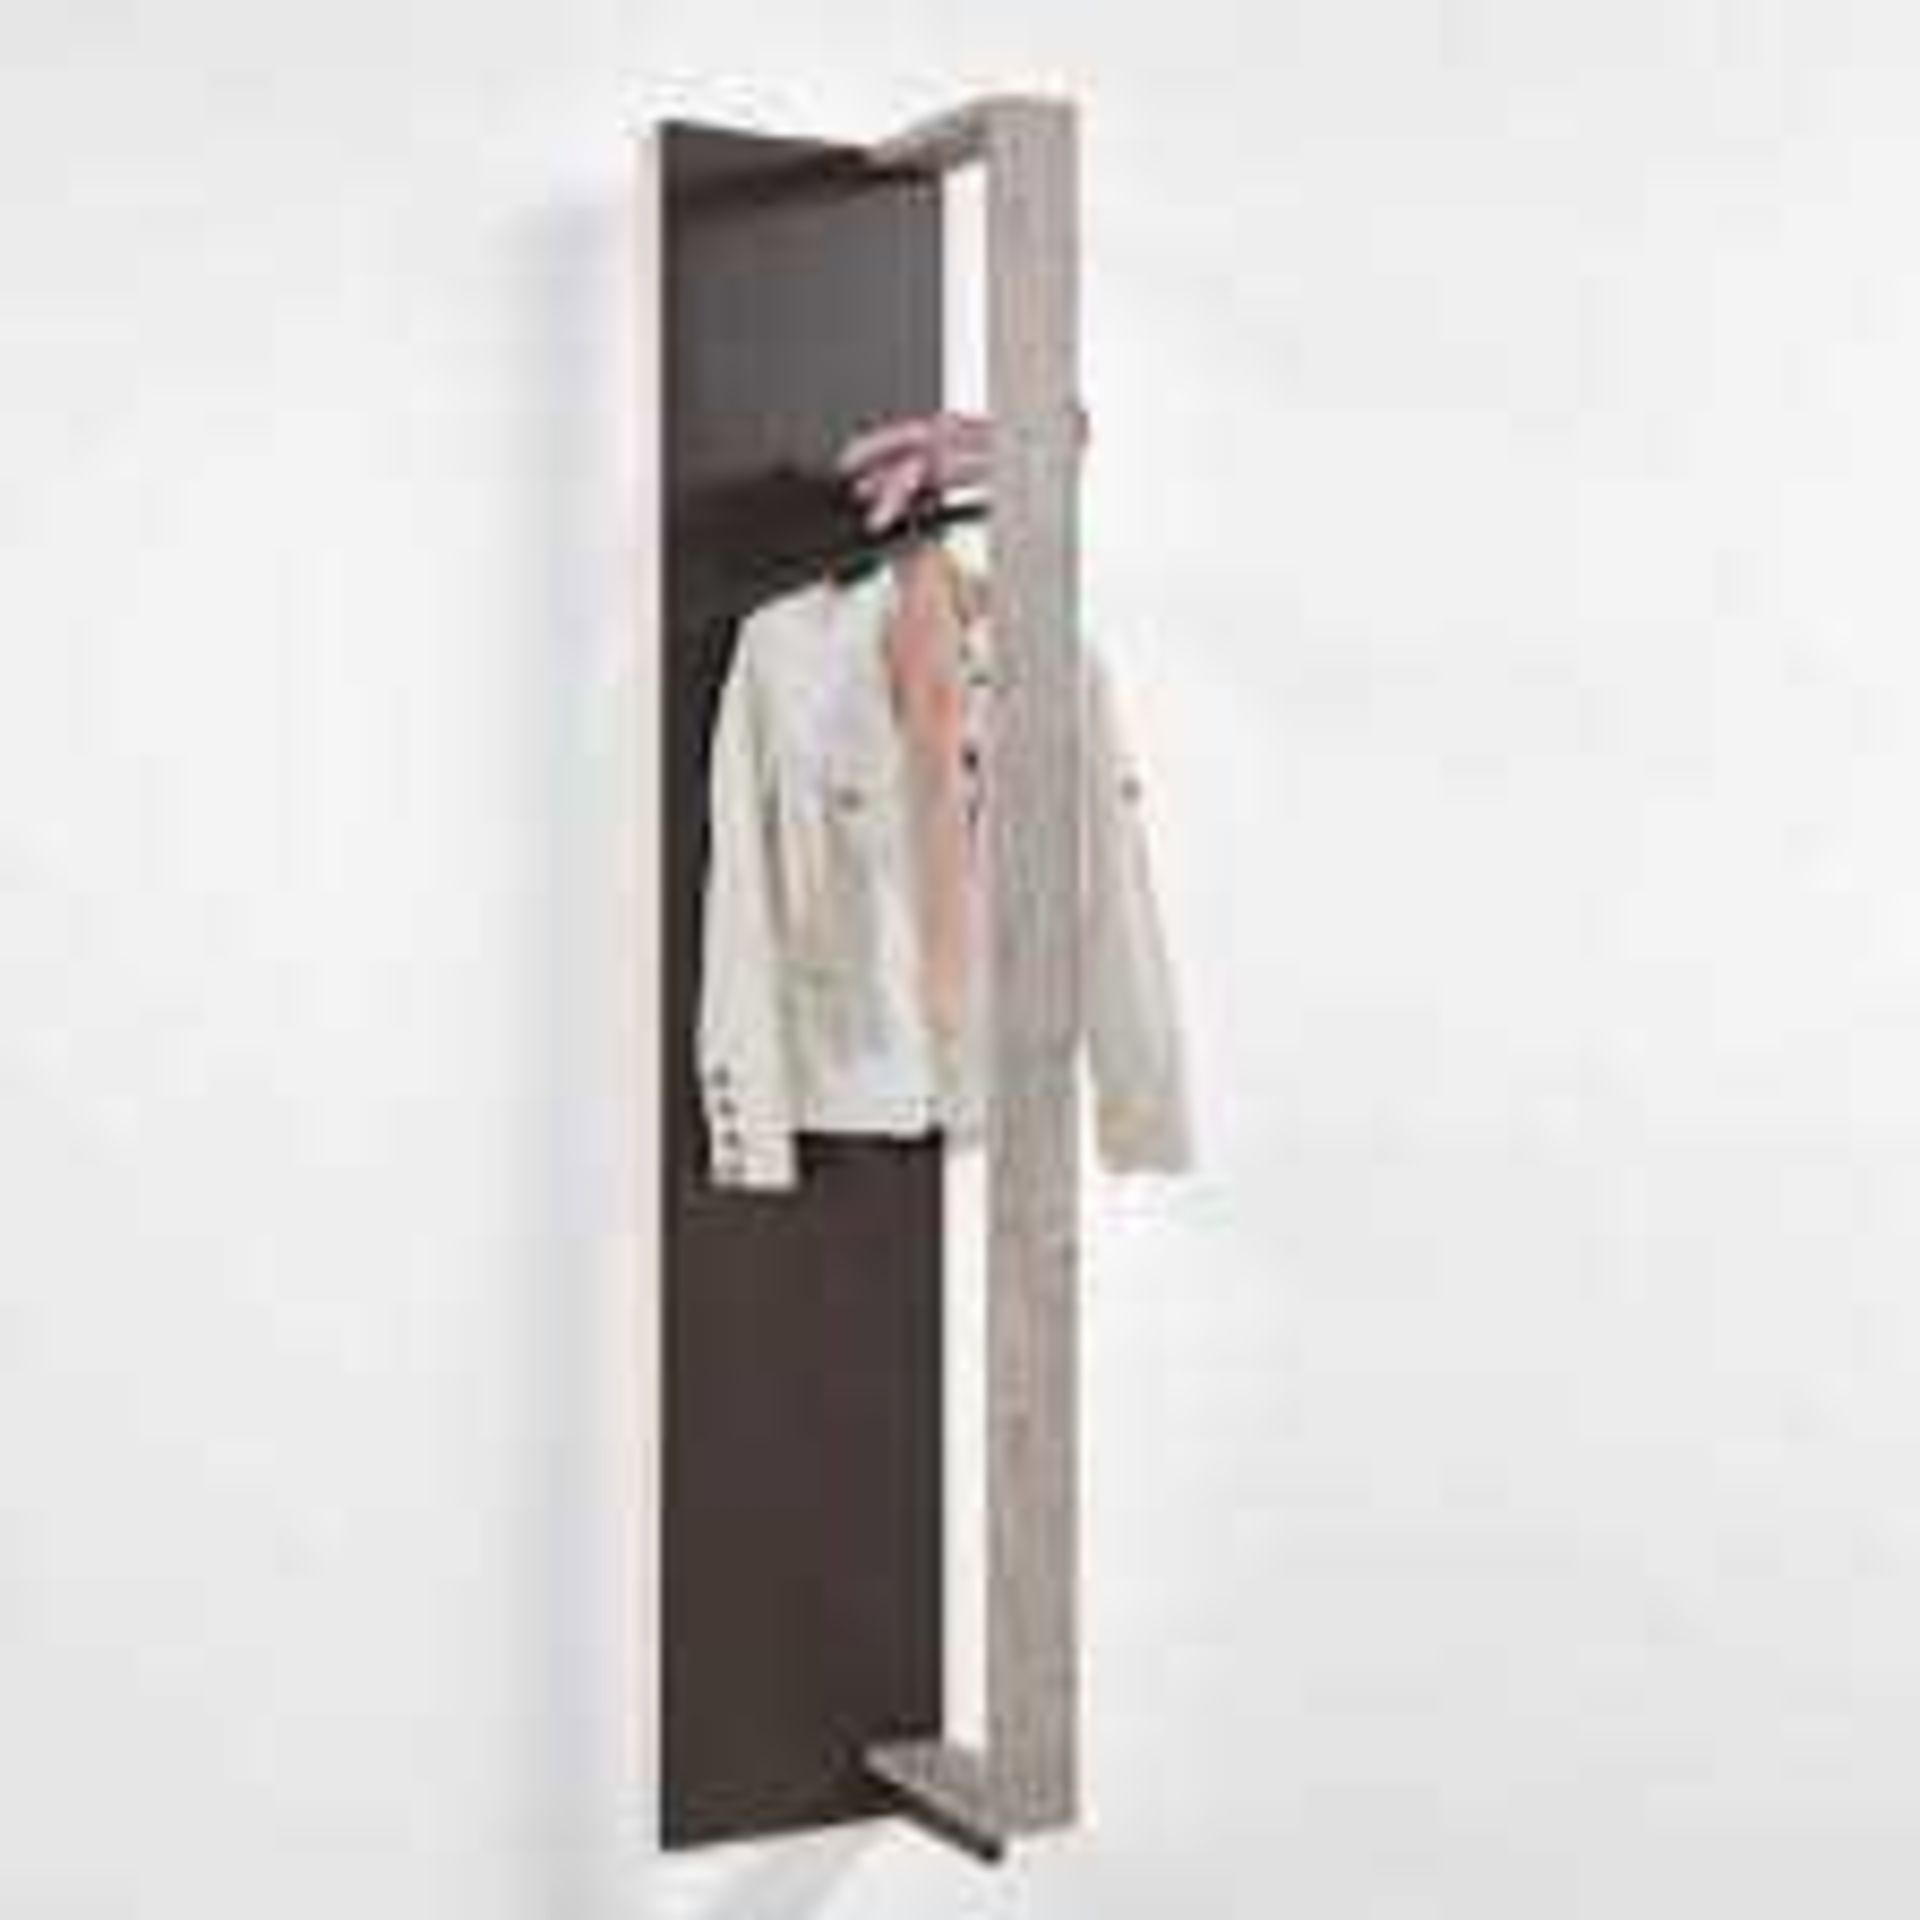 RRP £90. Boxed New Oxford Canelo Wall Mounted Coat Rack (Appraisals Available On Request) (